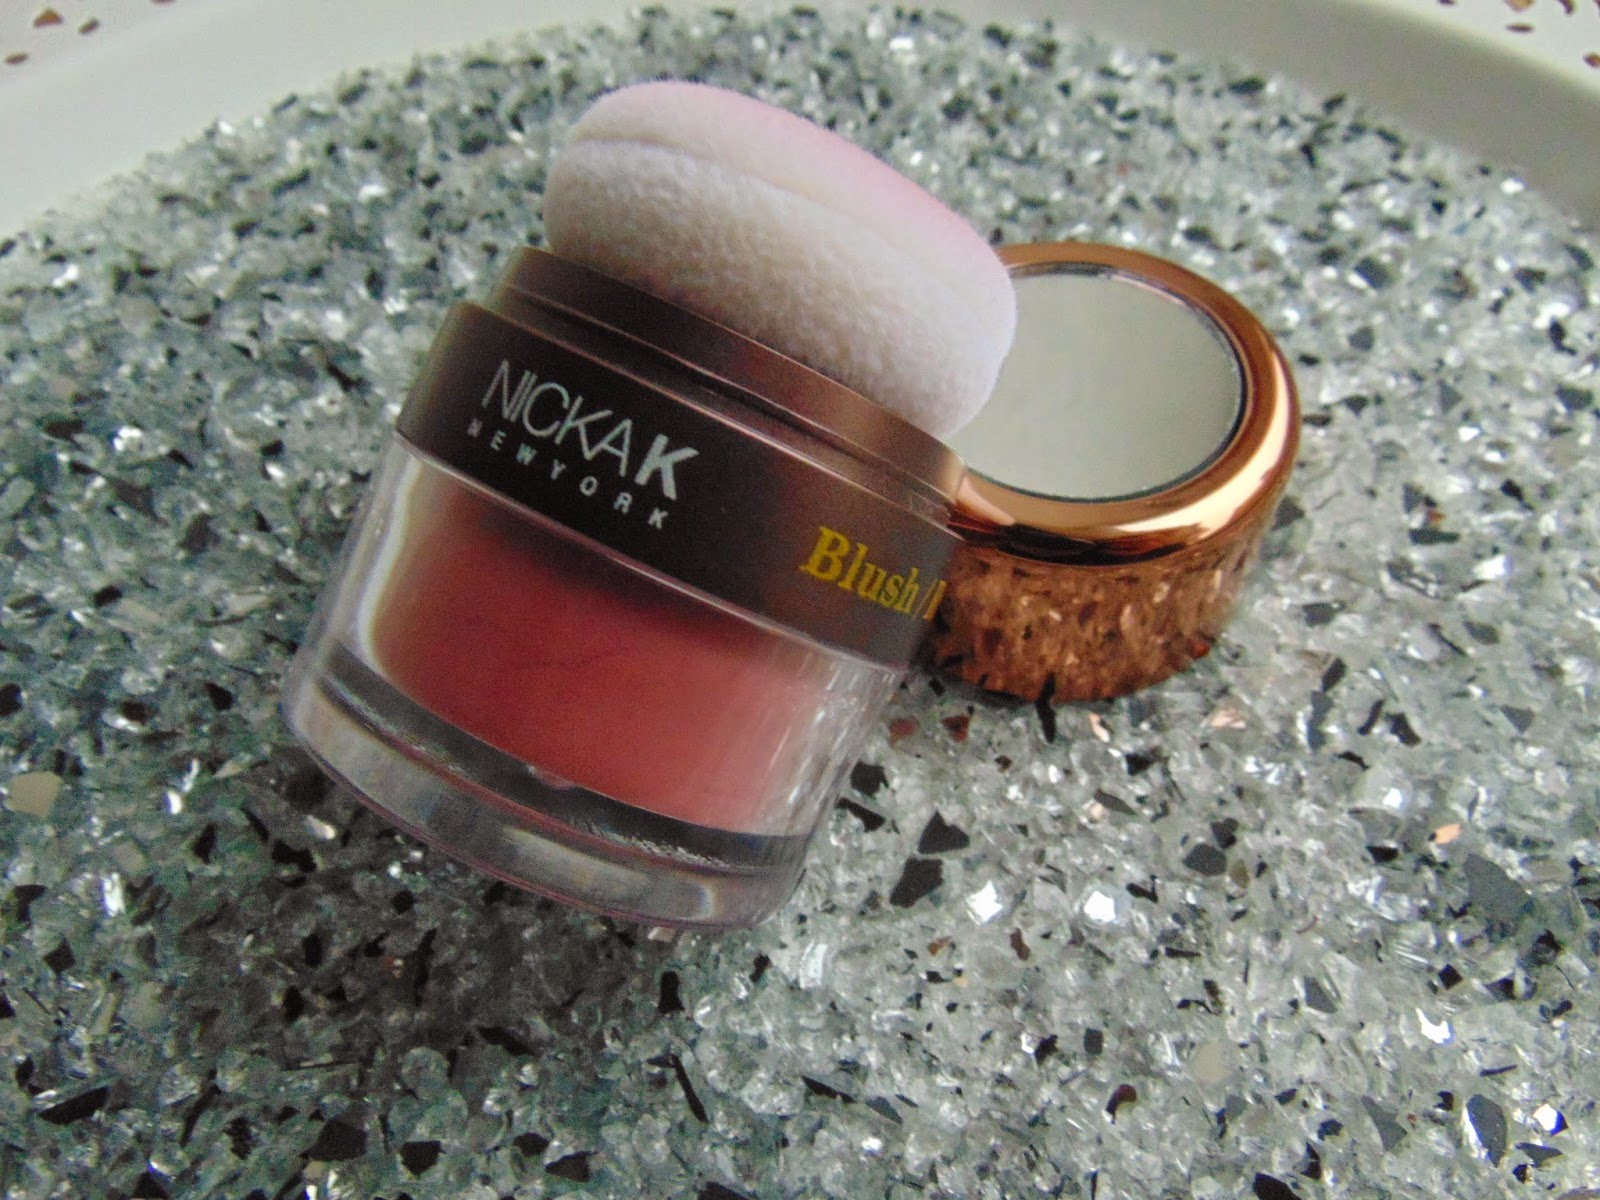 Nicka K New York - Colorluxe Powder Blush - www.annitschkasblog.de